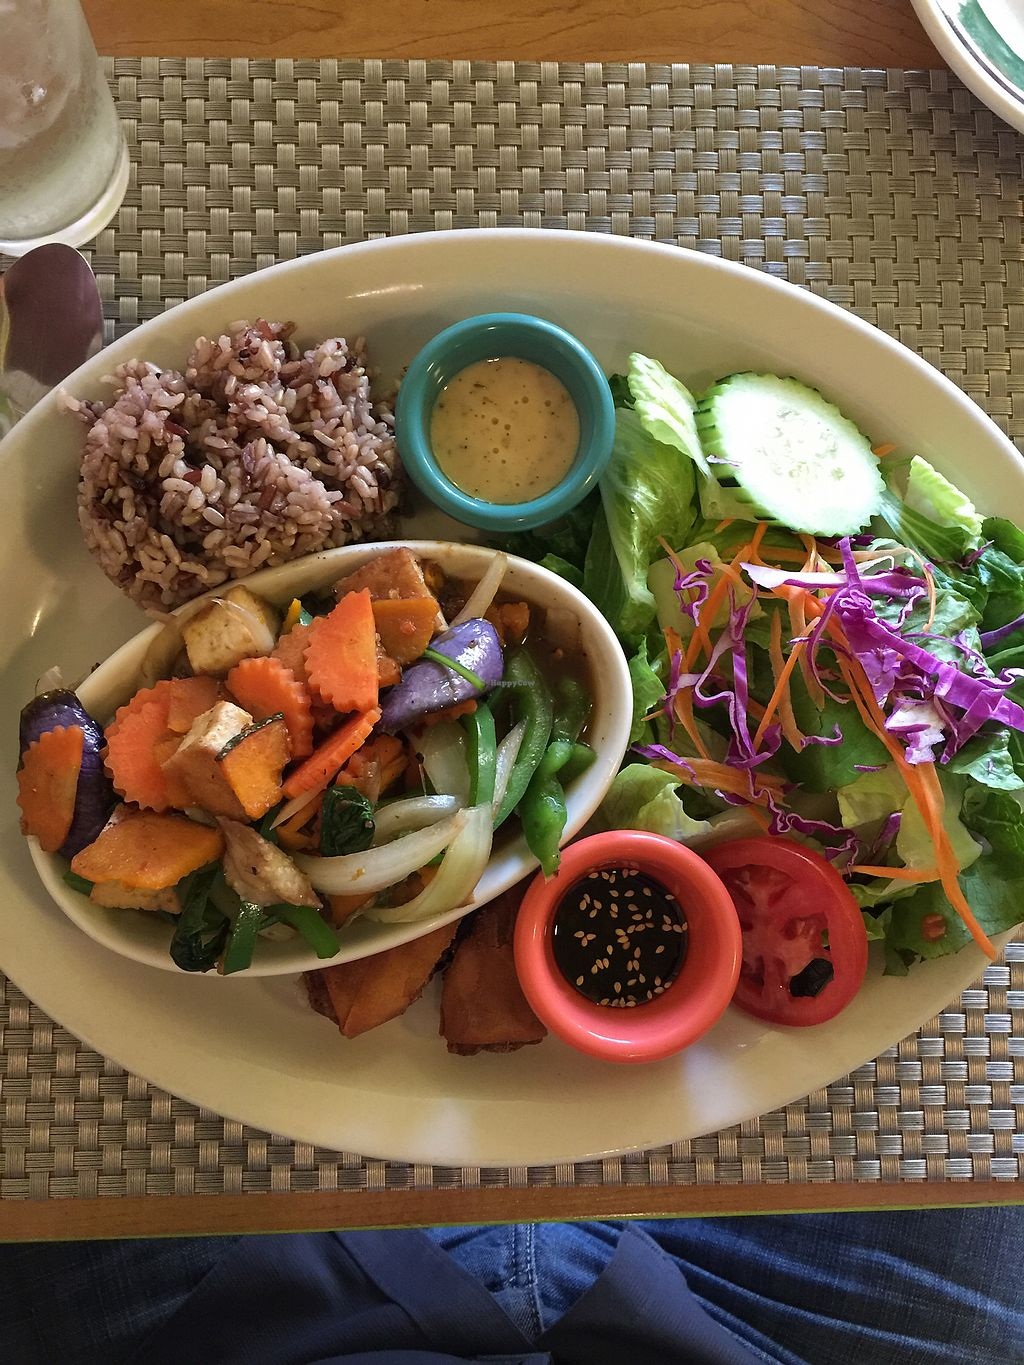 """Photo of Thai Vegan  by <a href=""""/members/profile/ragenA"""">ragenA</a> <br/>PET, pumpkin eggplant and tofu dinner combo <br/> March 2, 2018  - <a href='/contact/abuse/image/107165/365881'>Report</a>"""